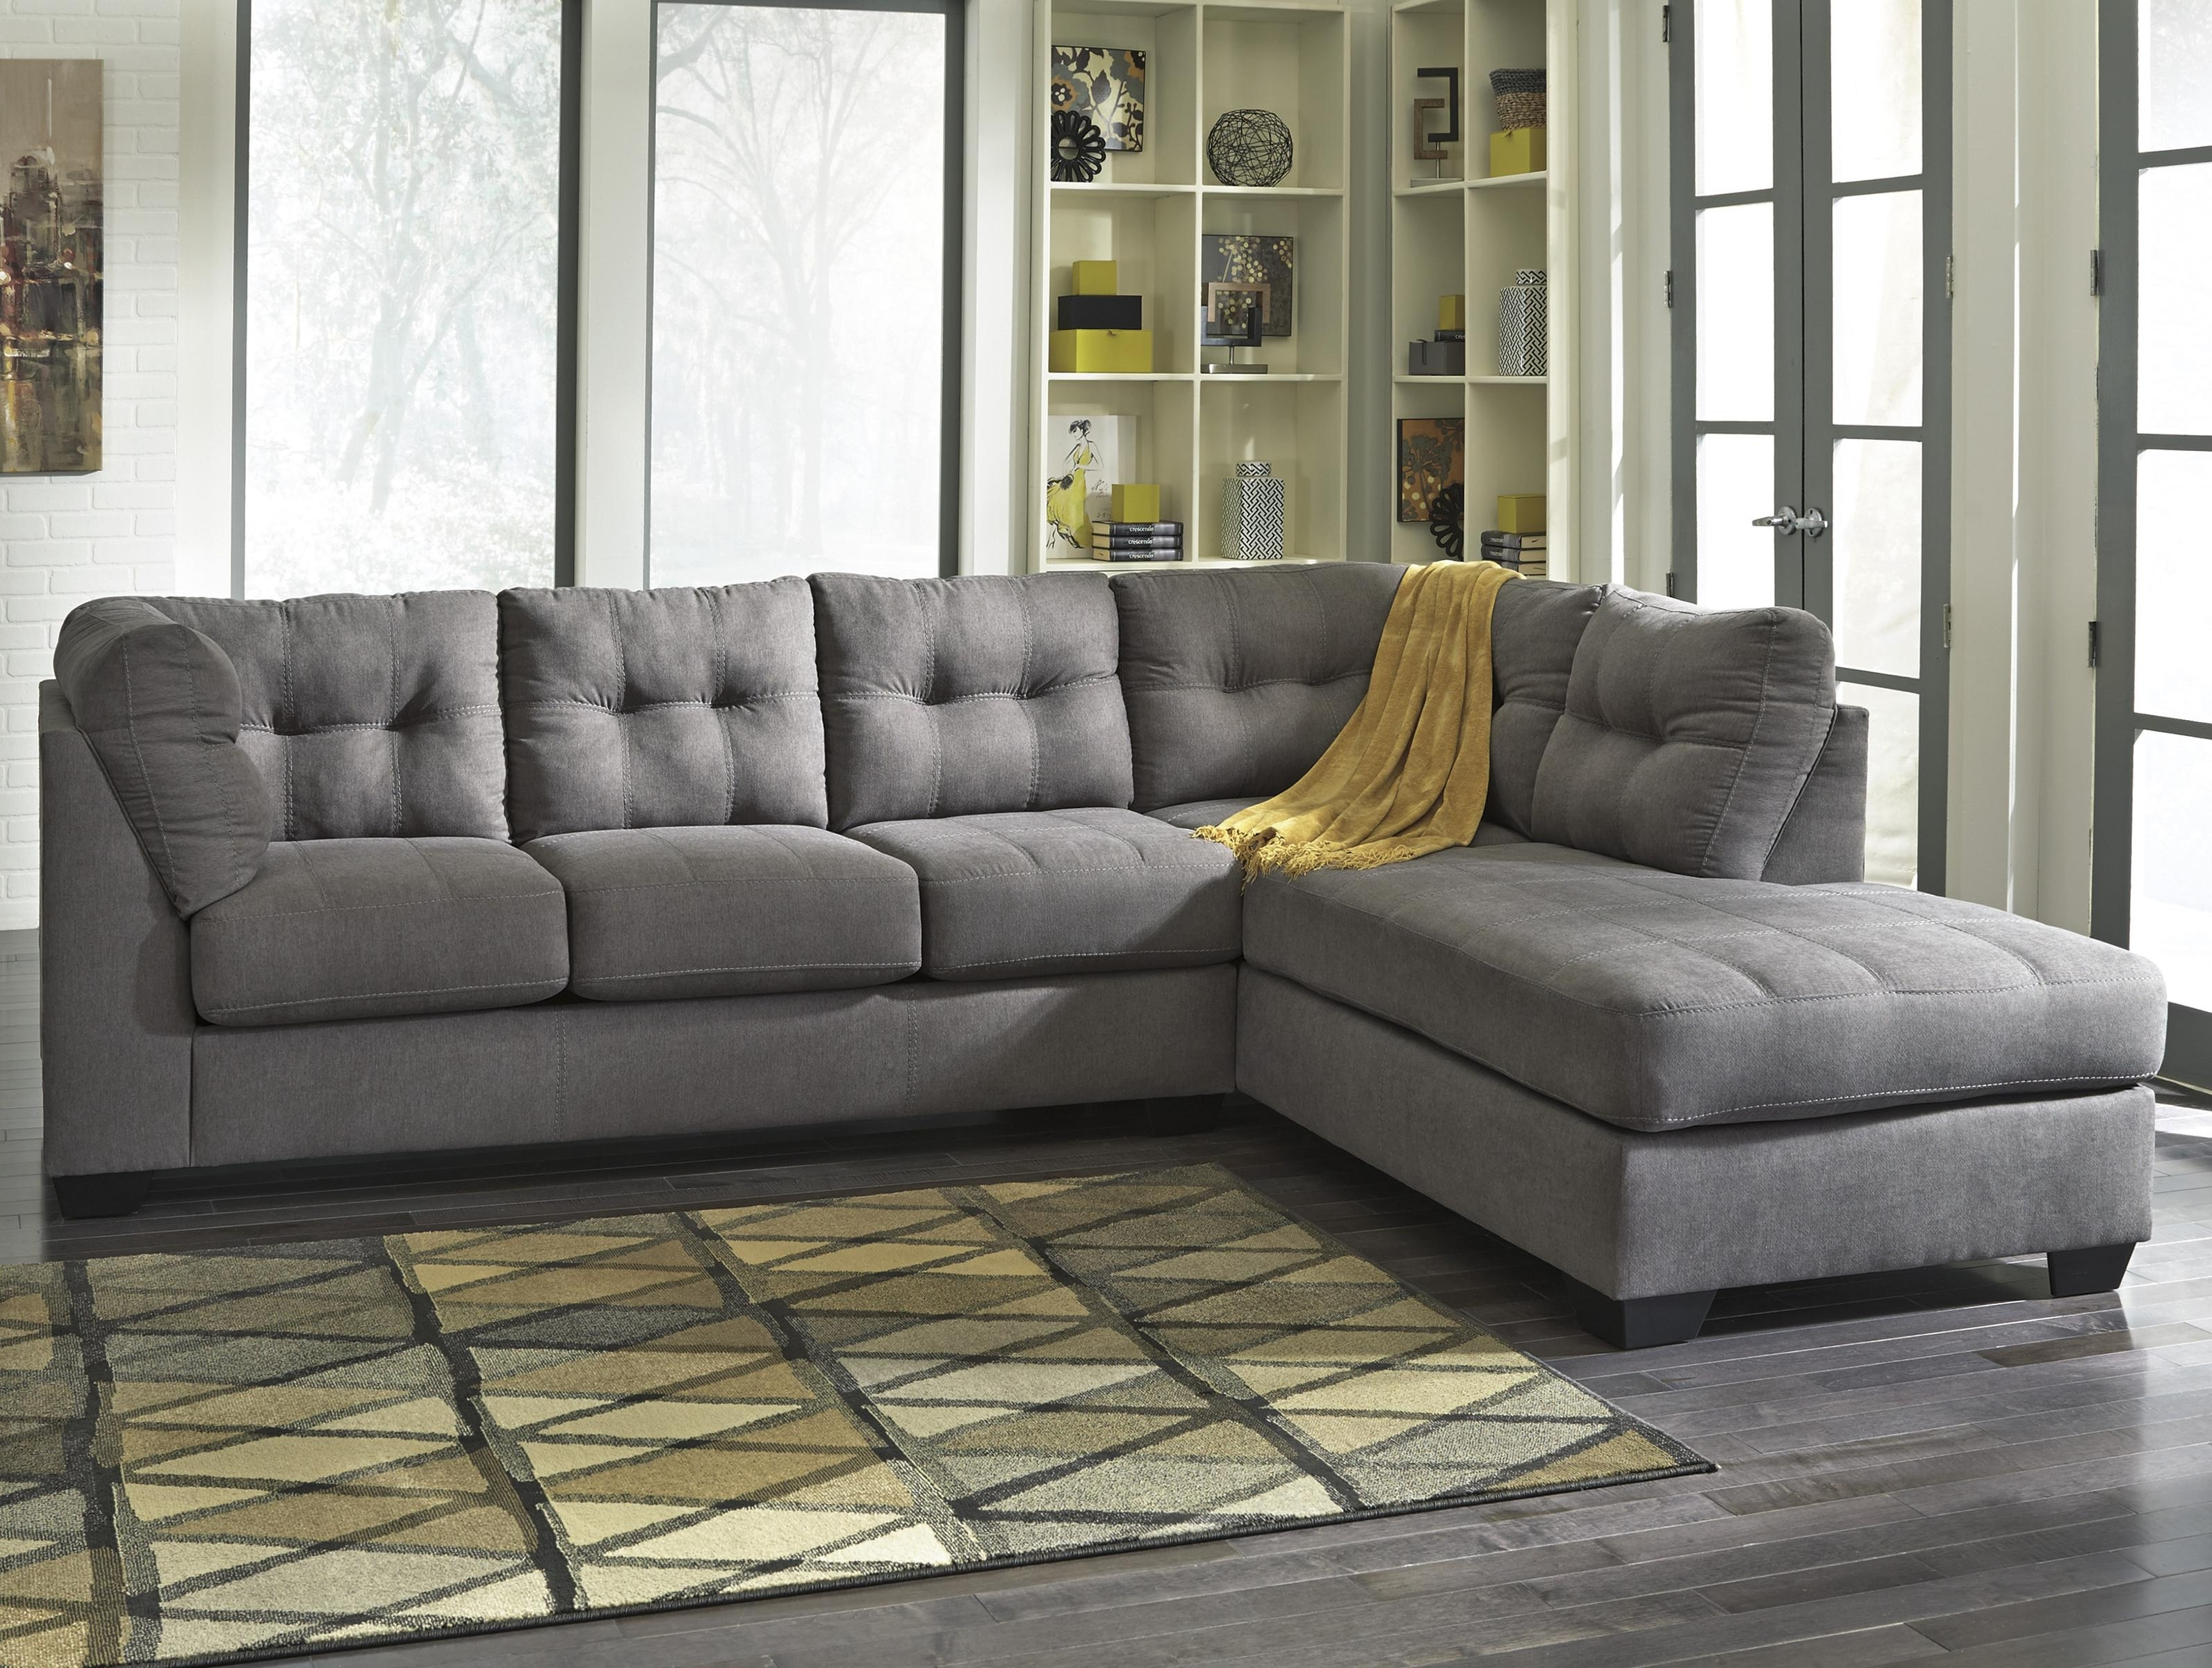 Preferred Sectional Sofa Design: Left Sectional Sofa Side Chaise Handed Within Sleek Sectional Sofas (View 14 of 15)